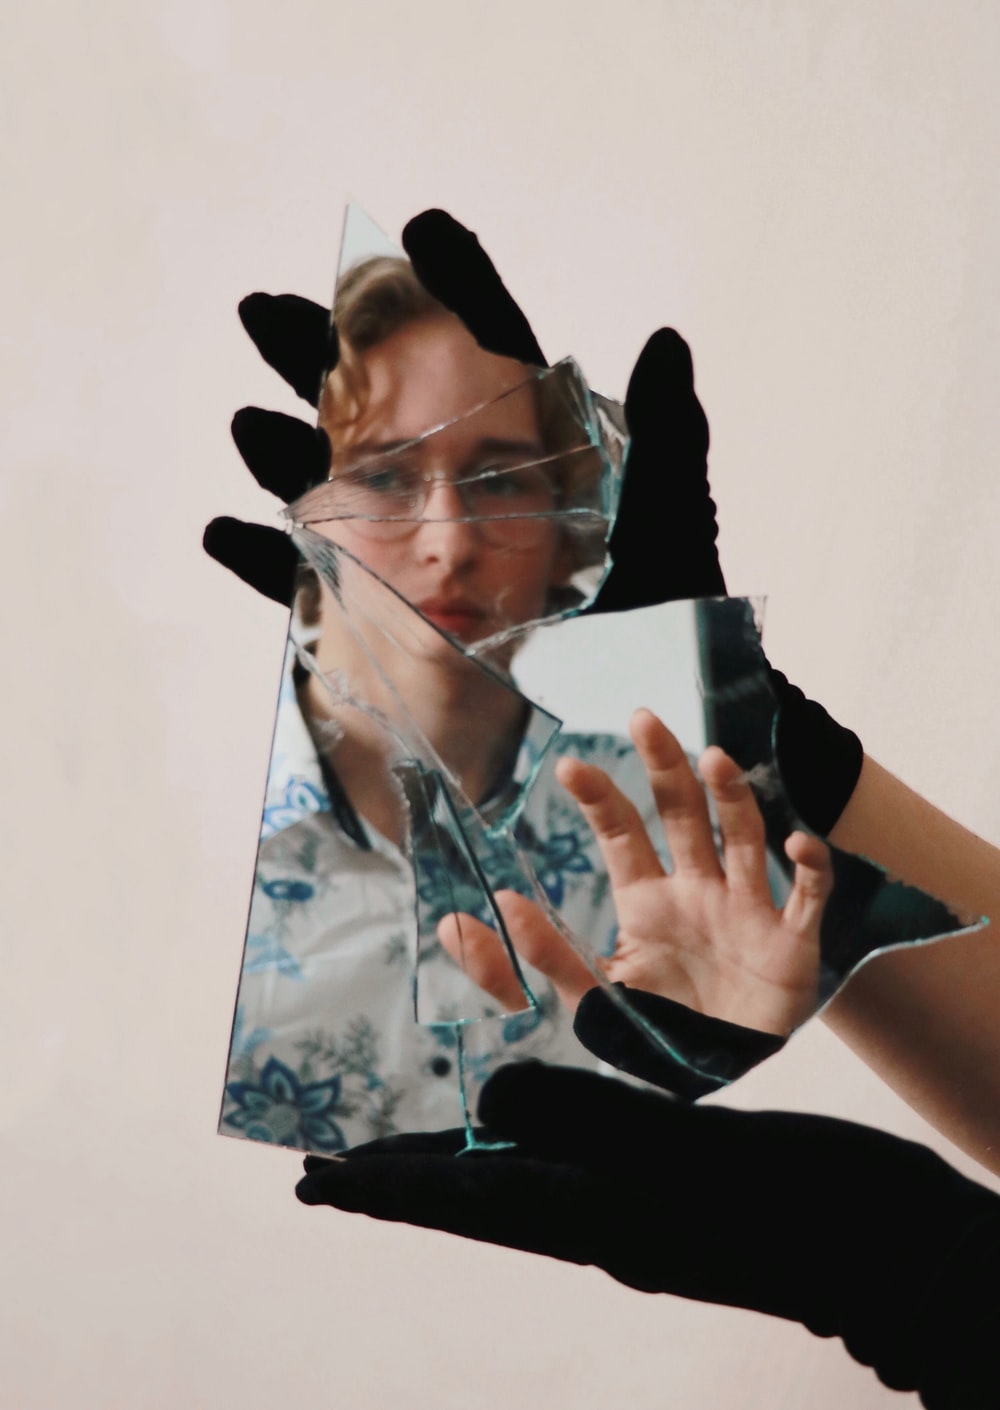 woman in black shirt covering face with hands